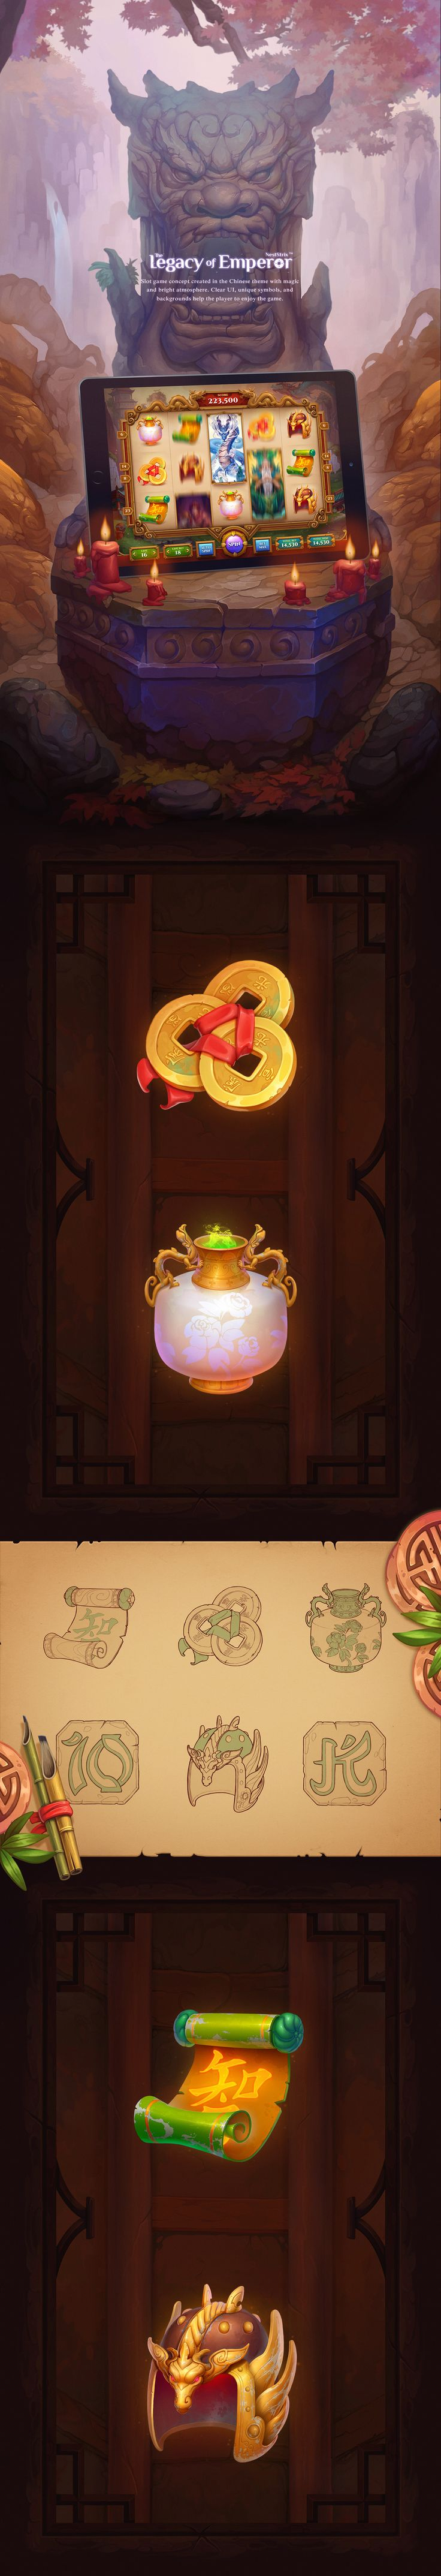 New game concepts made by our studio are shown here. Glad to represent Poker game with unique characters and Slot game concept created in the Chinese theme with magic and bright atmosphere. We'll be happy to create the art for similar games with you. Hop…